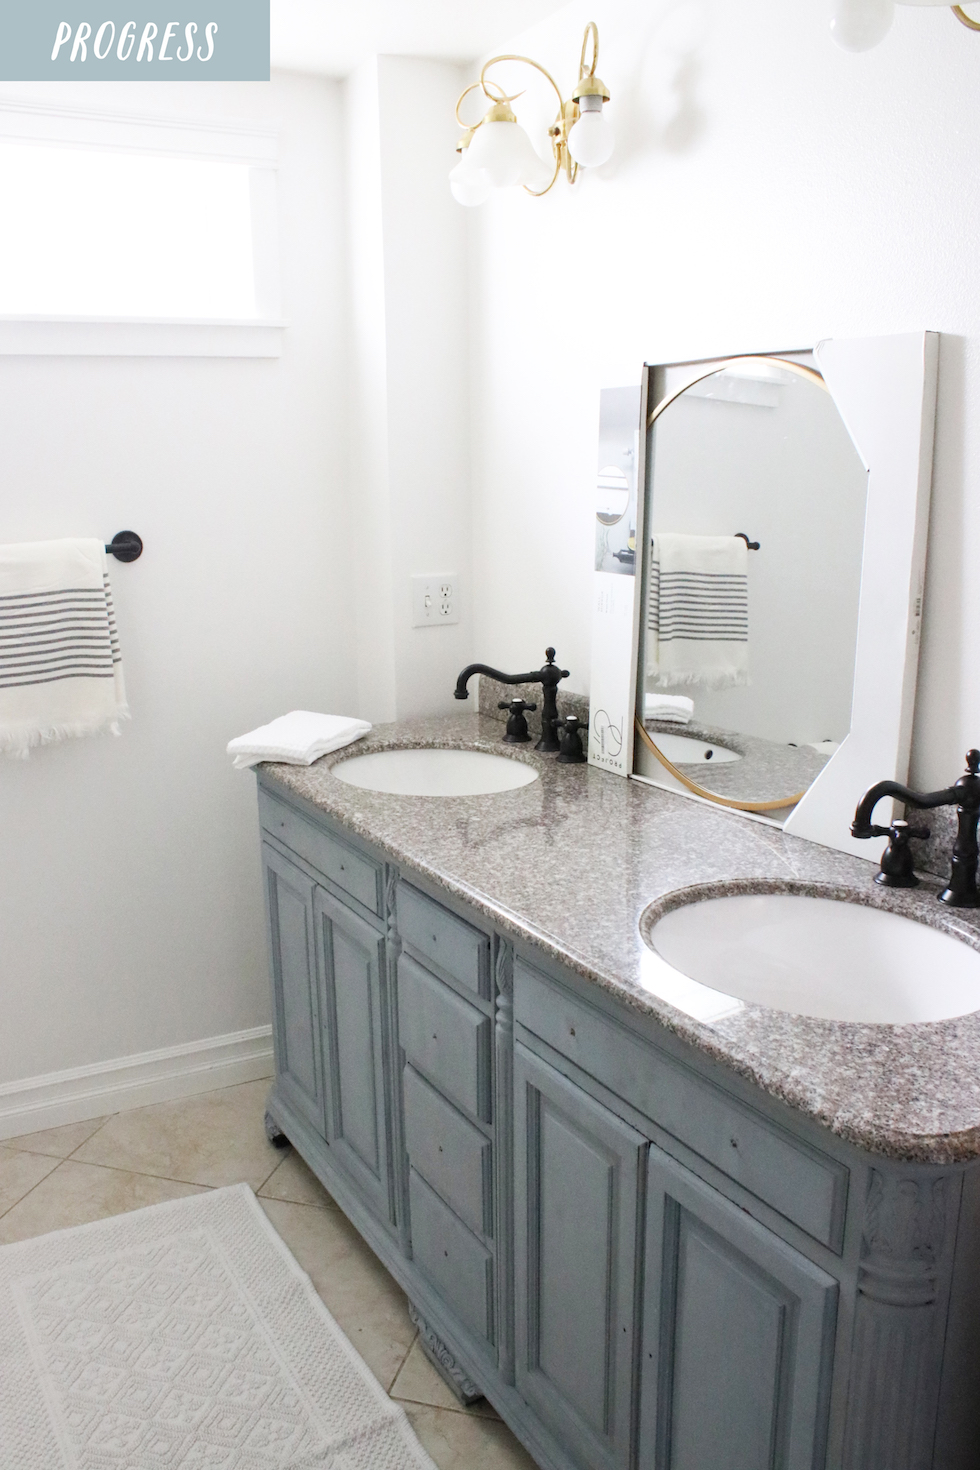 New Bathroom Faucets + Makeover in a Month Update